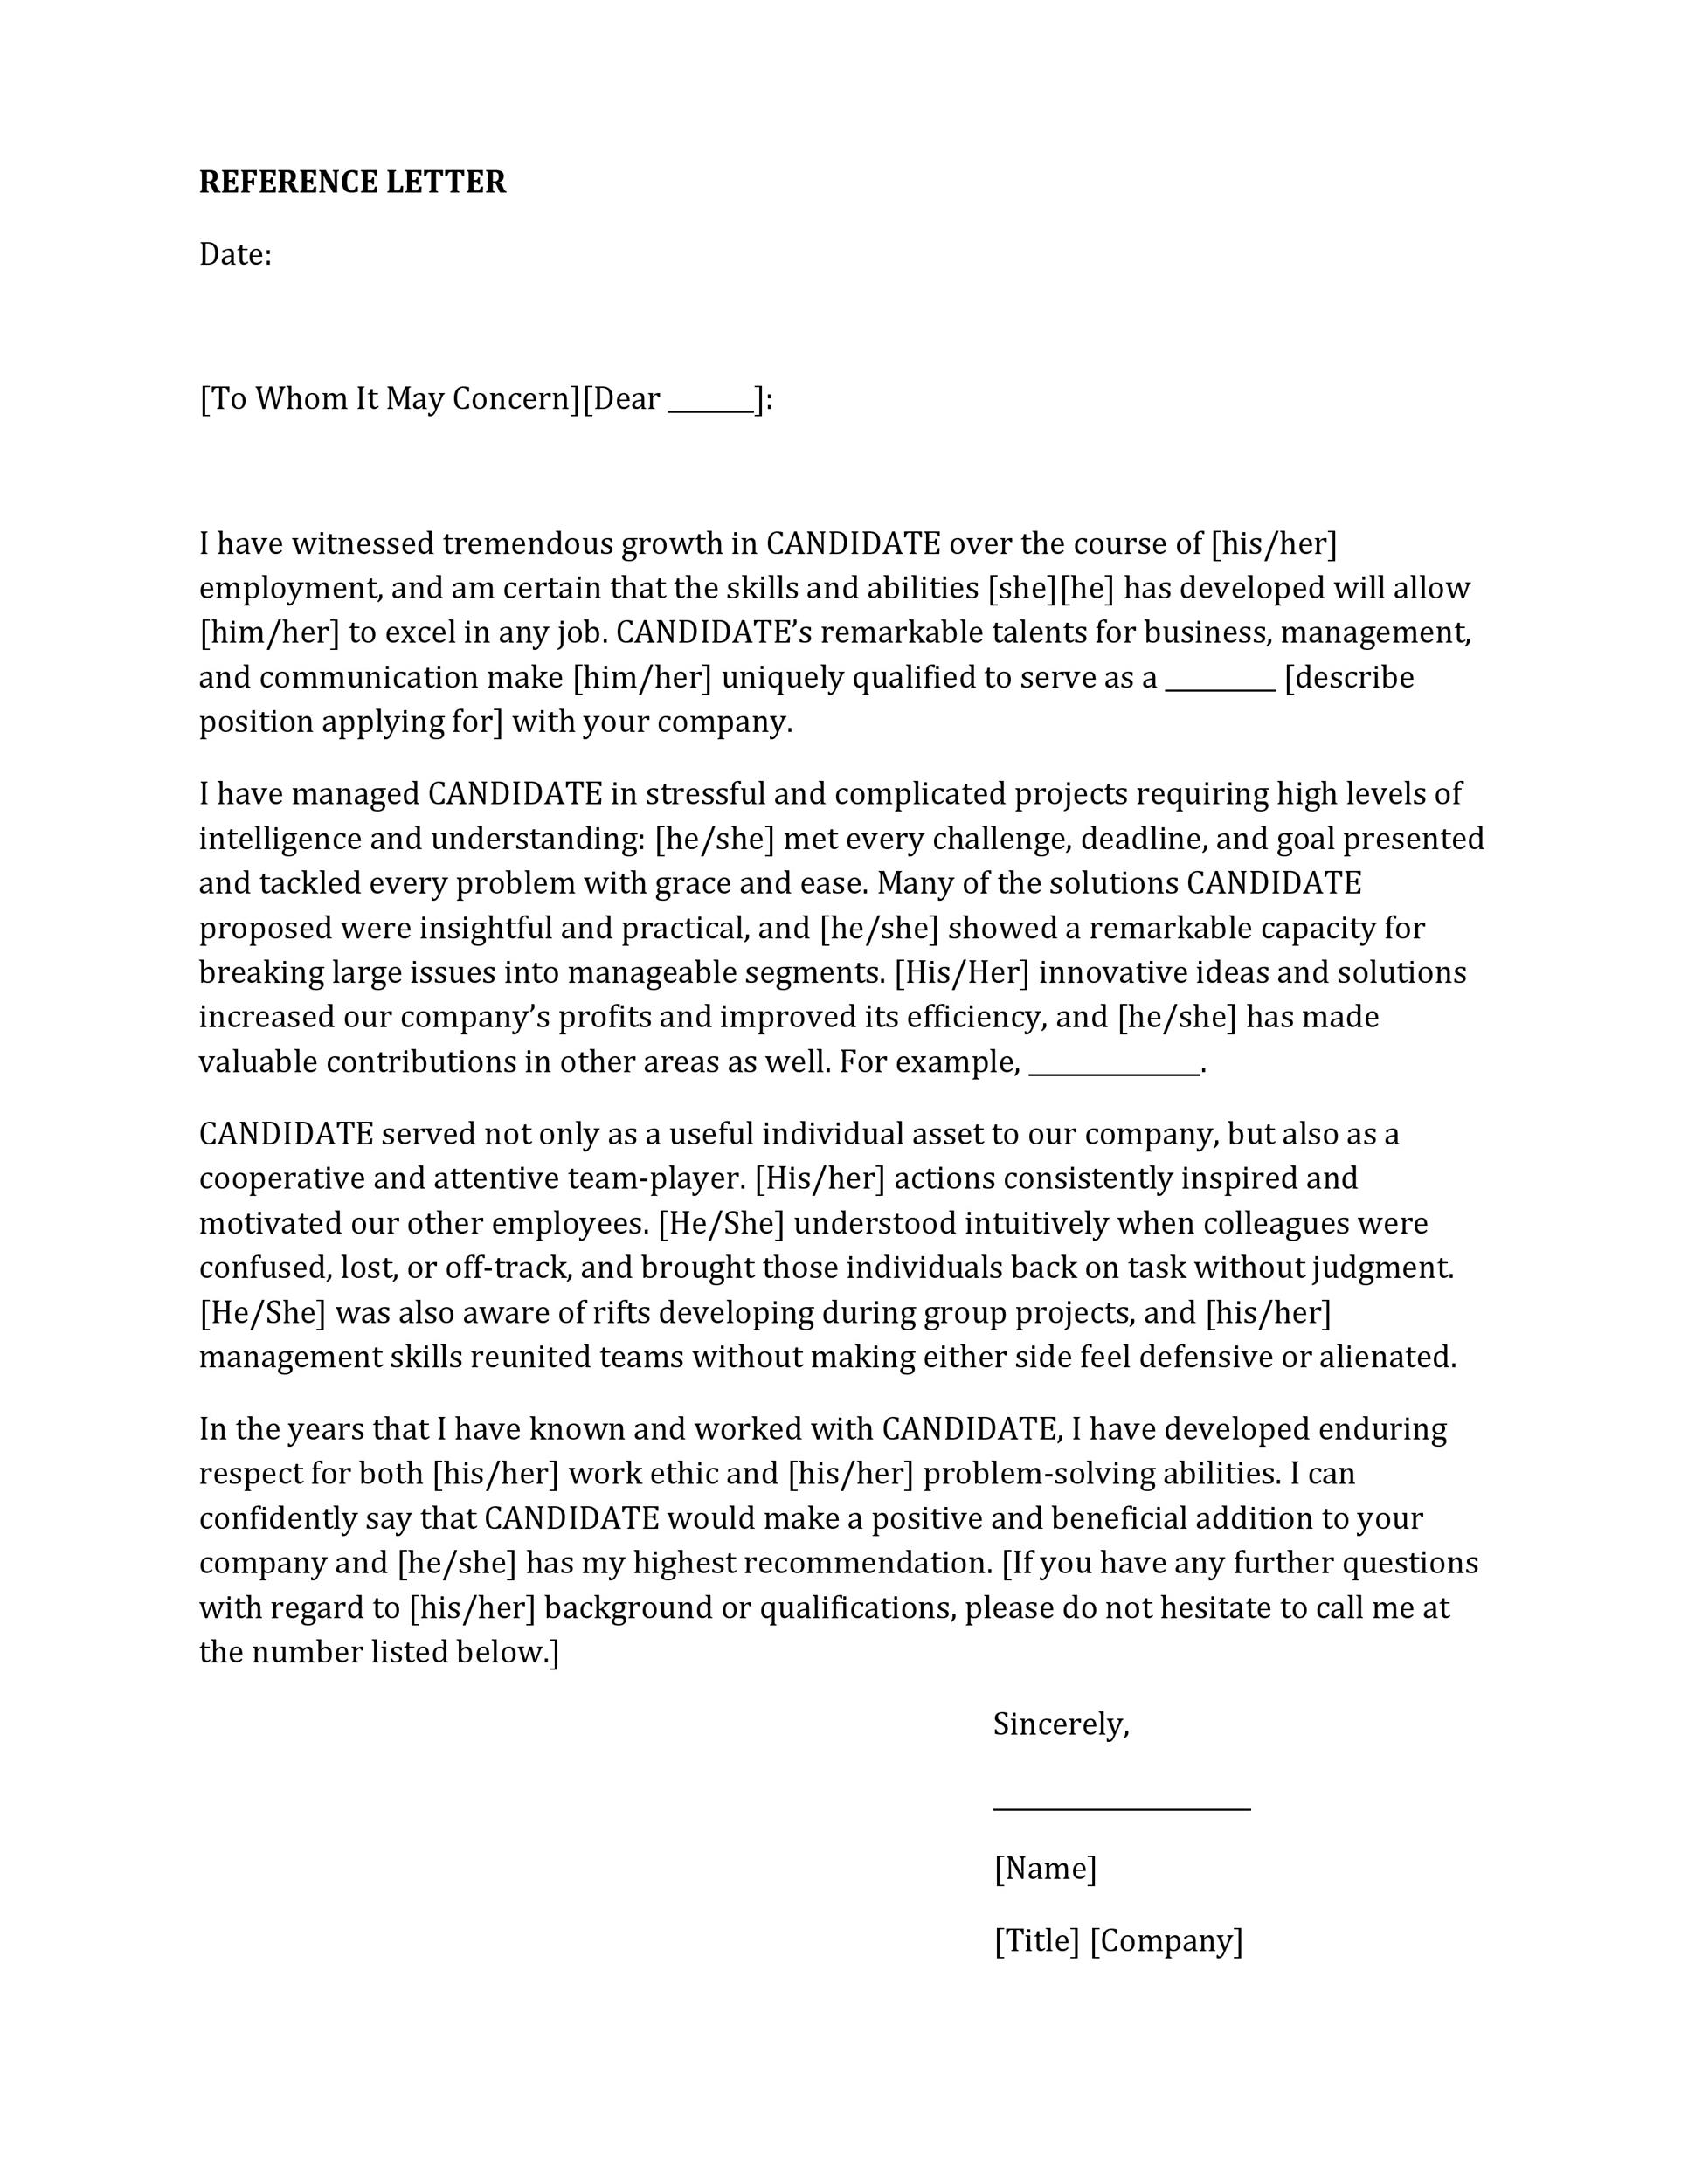 Landlord Reference Letter Tenant Reference Letter For A Friend